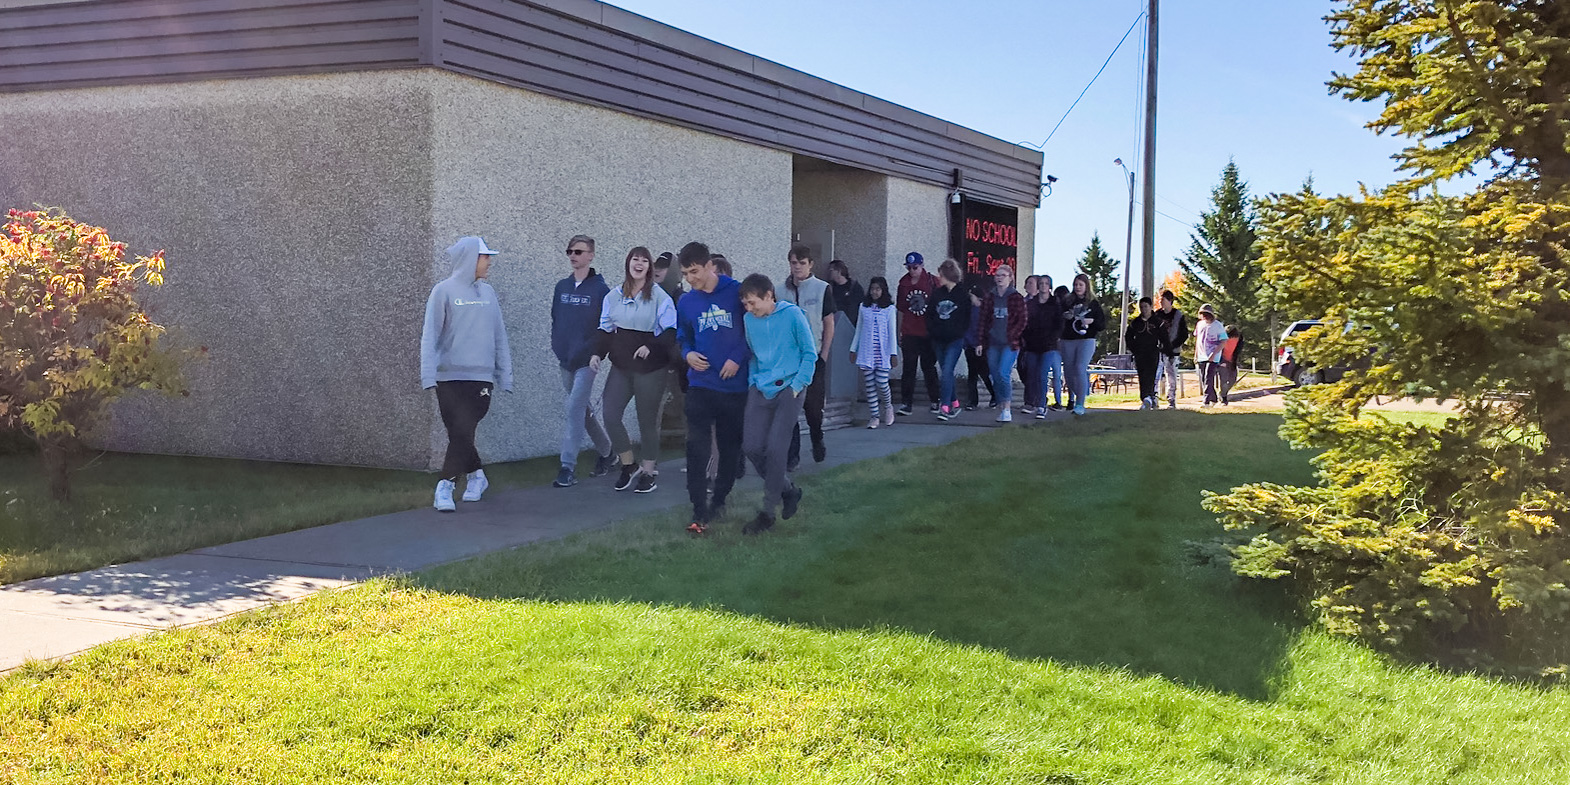 First to set out on the Terry Fox Run